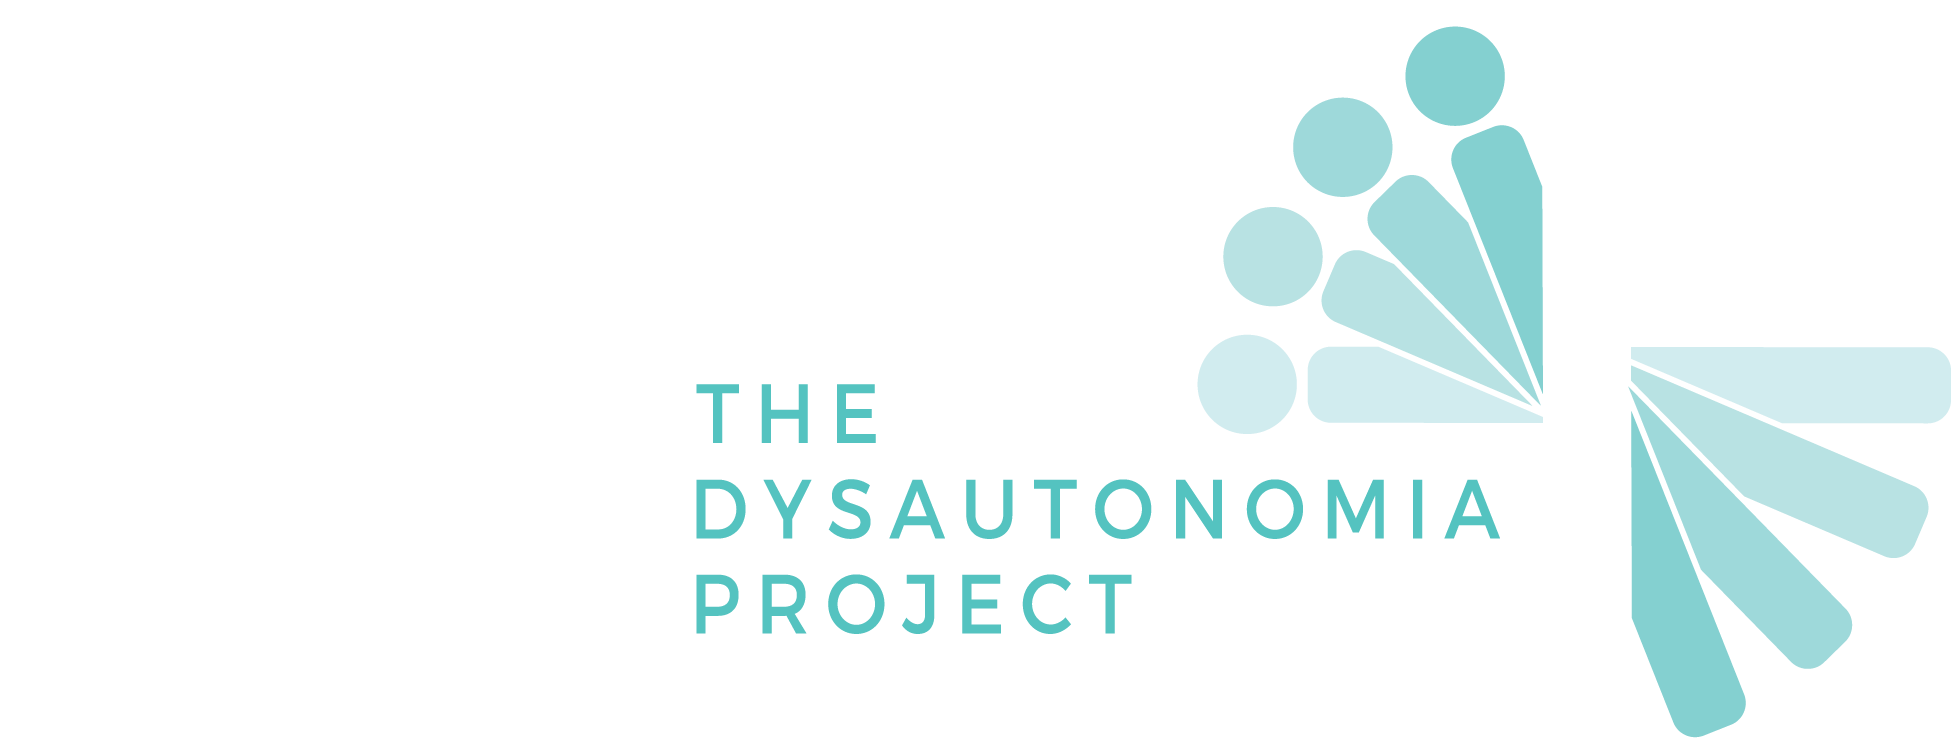 The Dysautonomia Project logo